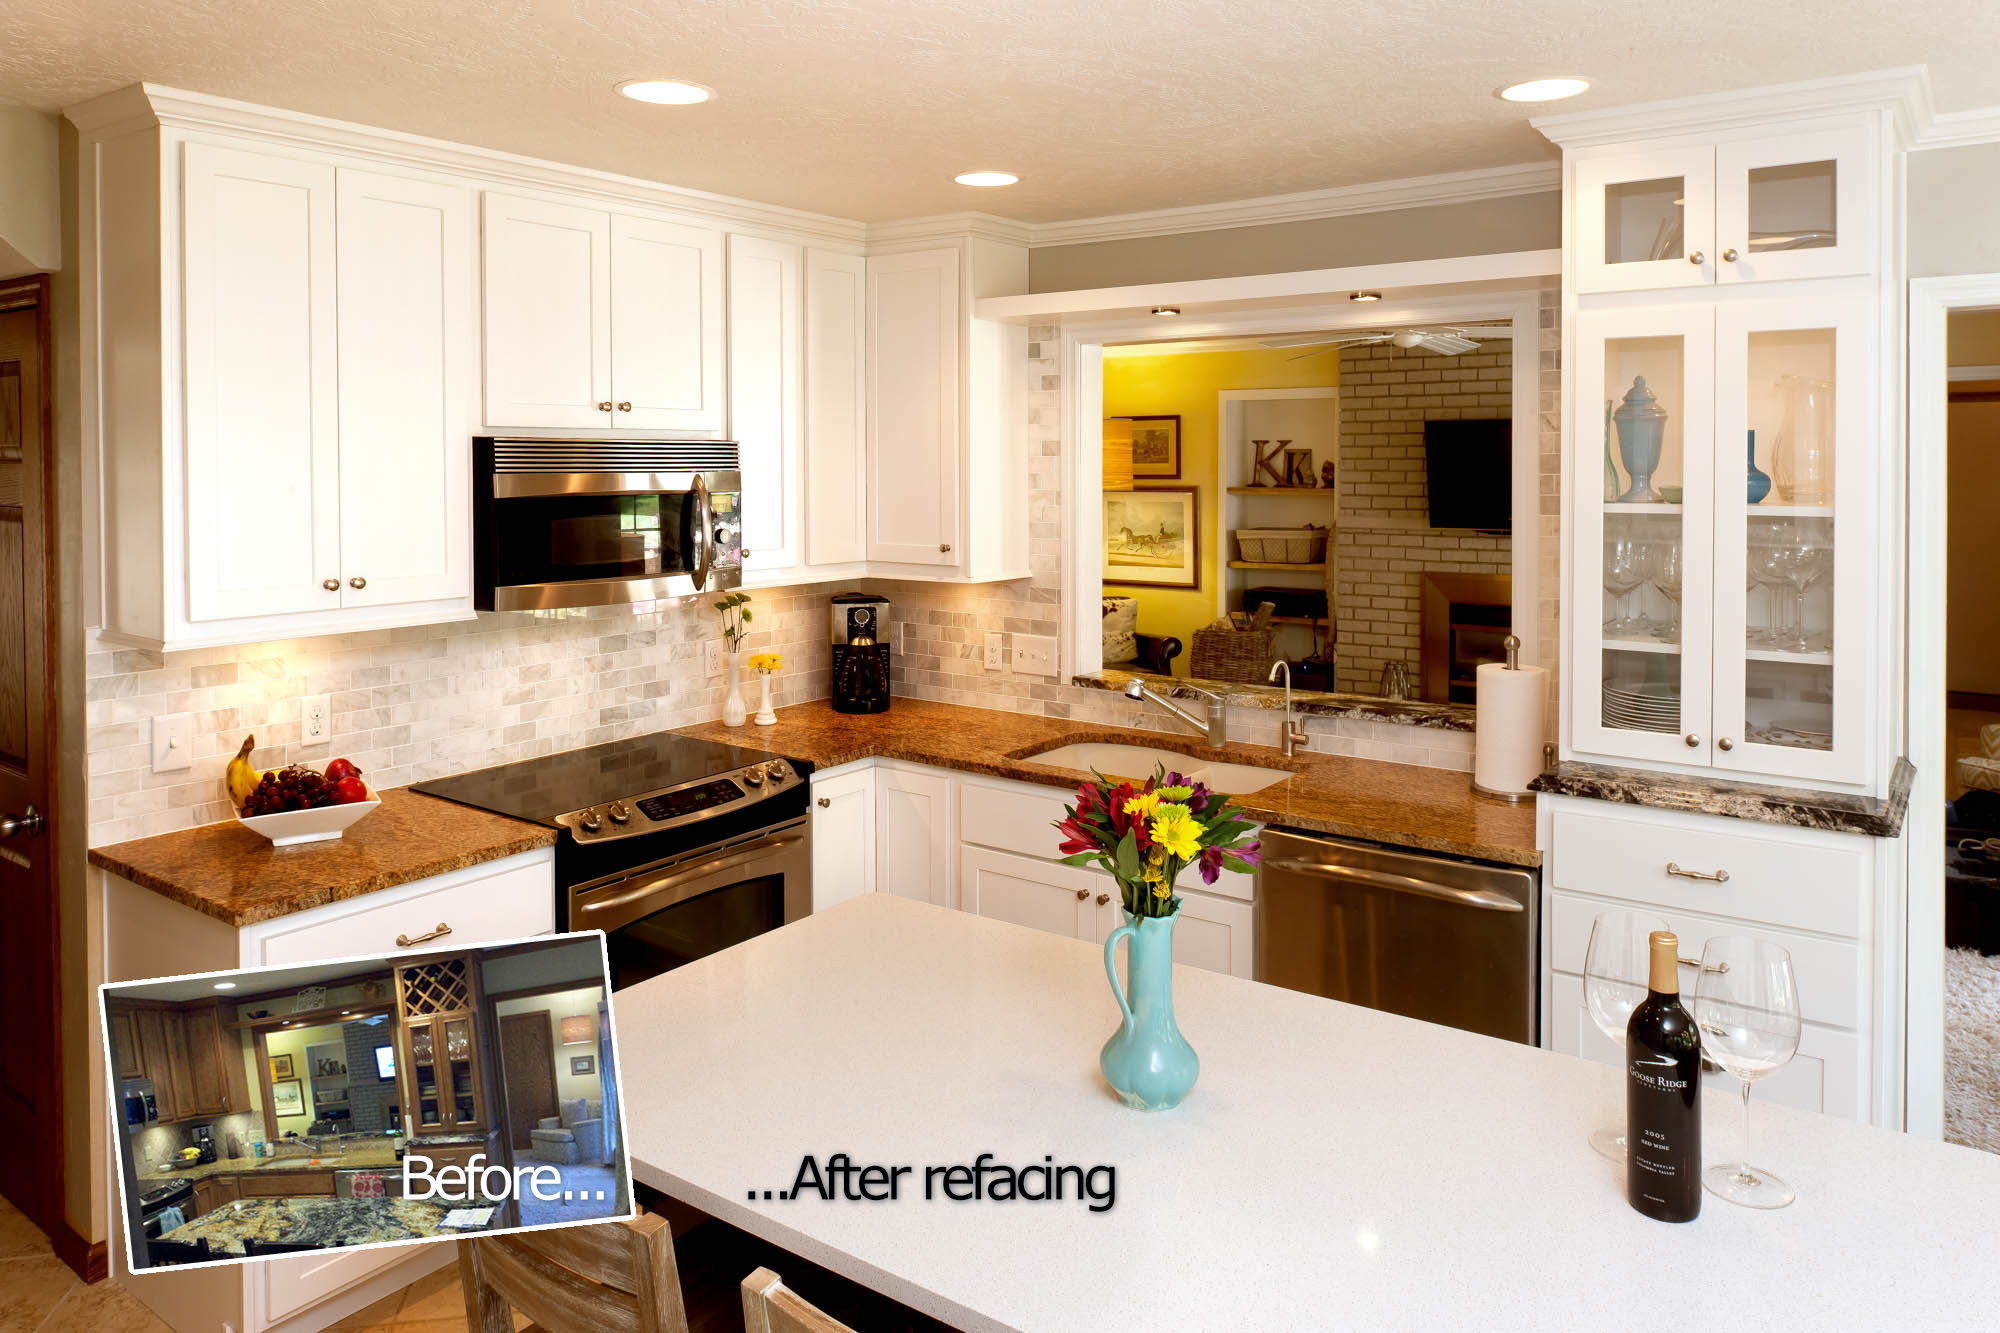 Renew Refacing | Painted kitchen cabinets in White by Showplace Cabinetry - view 2